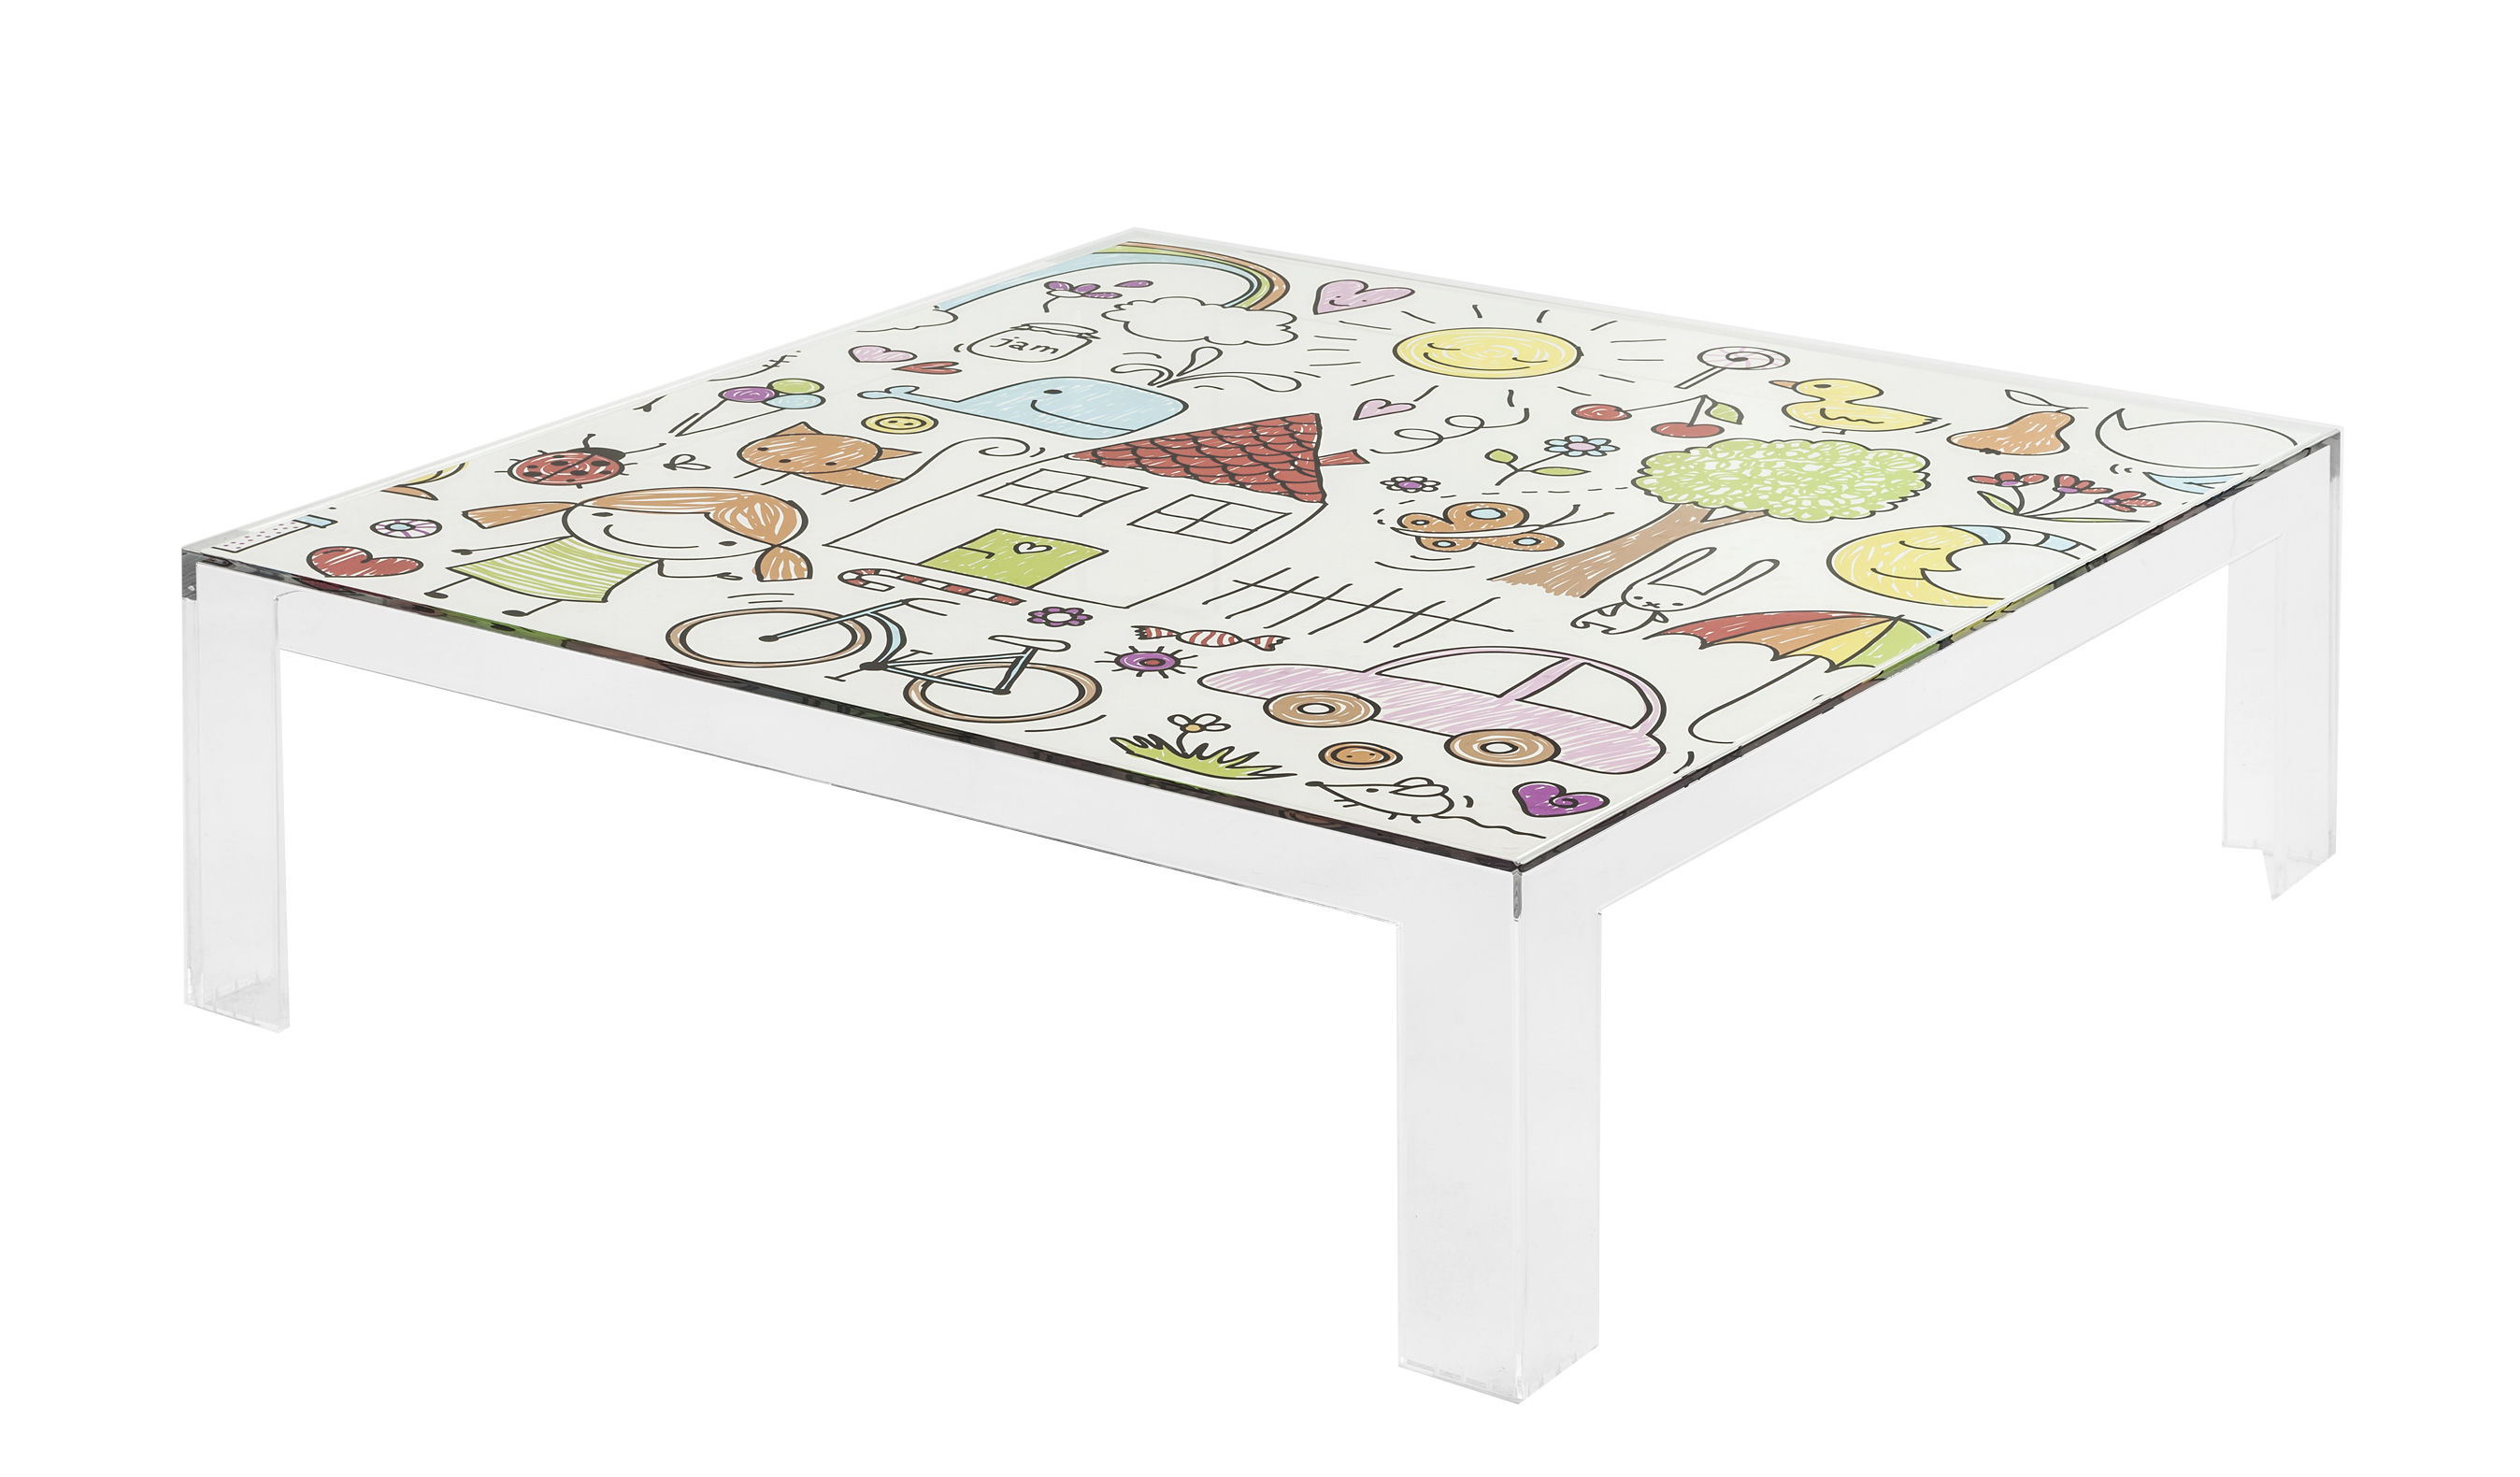 Furniture - Kids Furniture - Invisible Kids Children table - / Patterns by Kartell - Colored patterns / Transparent - PMMA